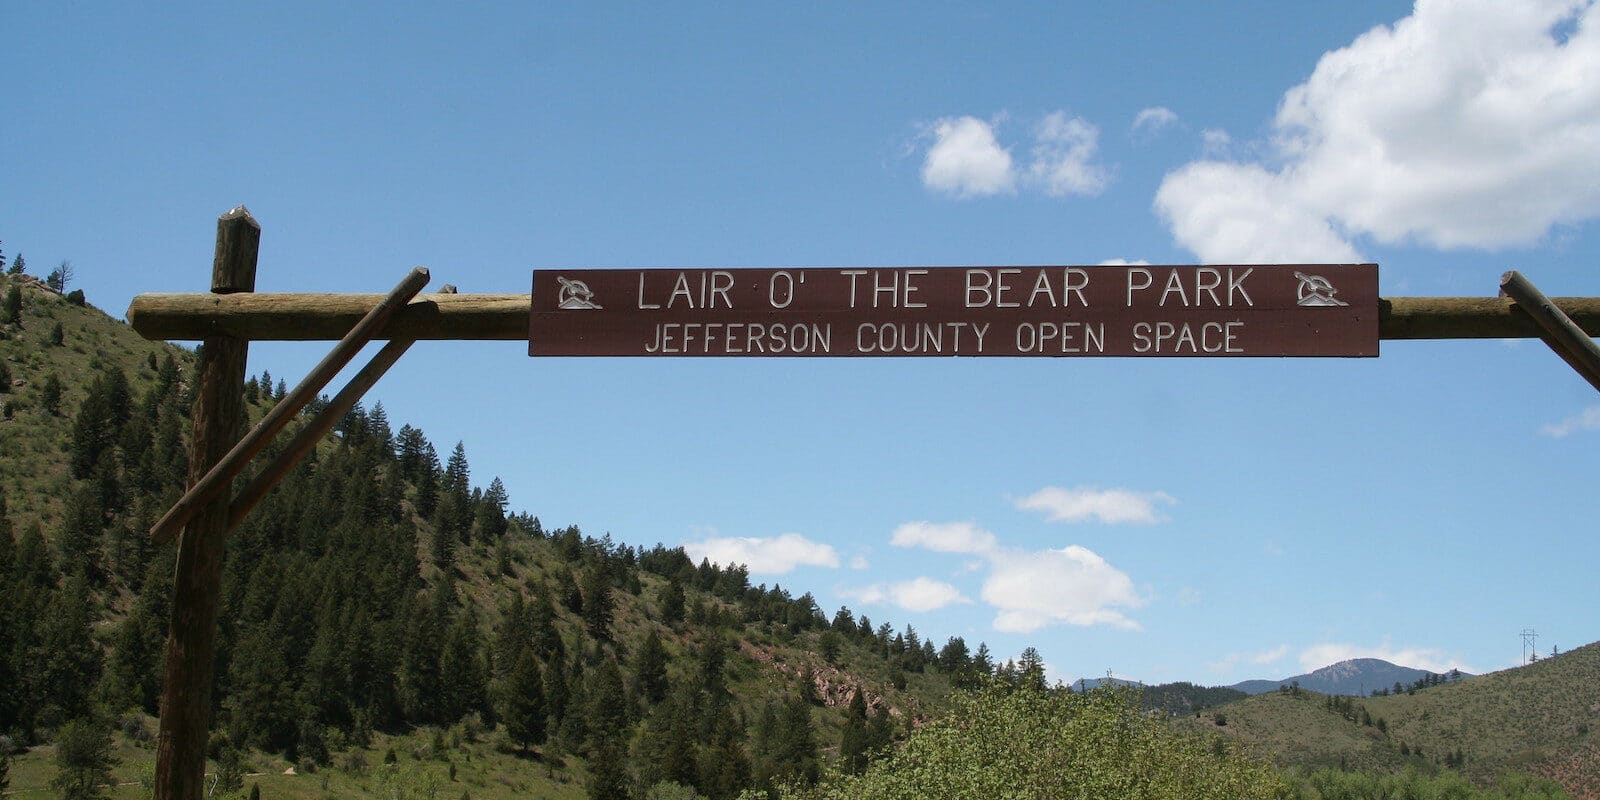 Image of a the entrance to Lair o' the Bear Park in Idledale, Colorado